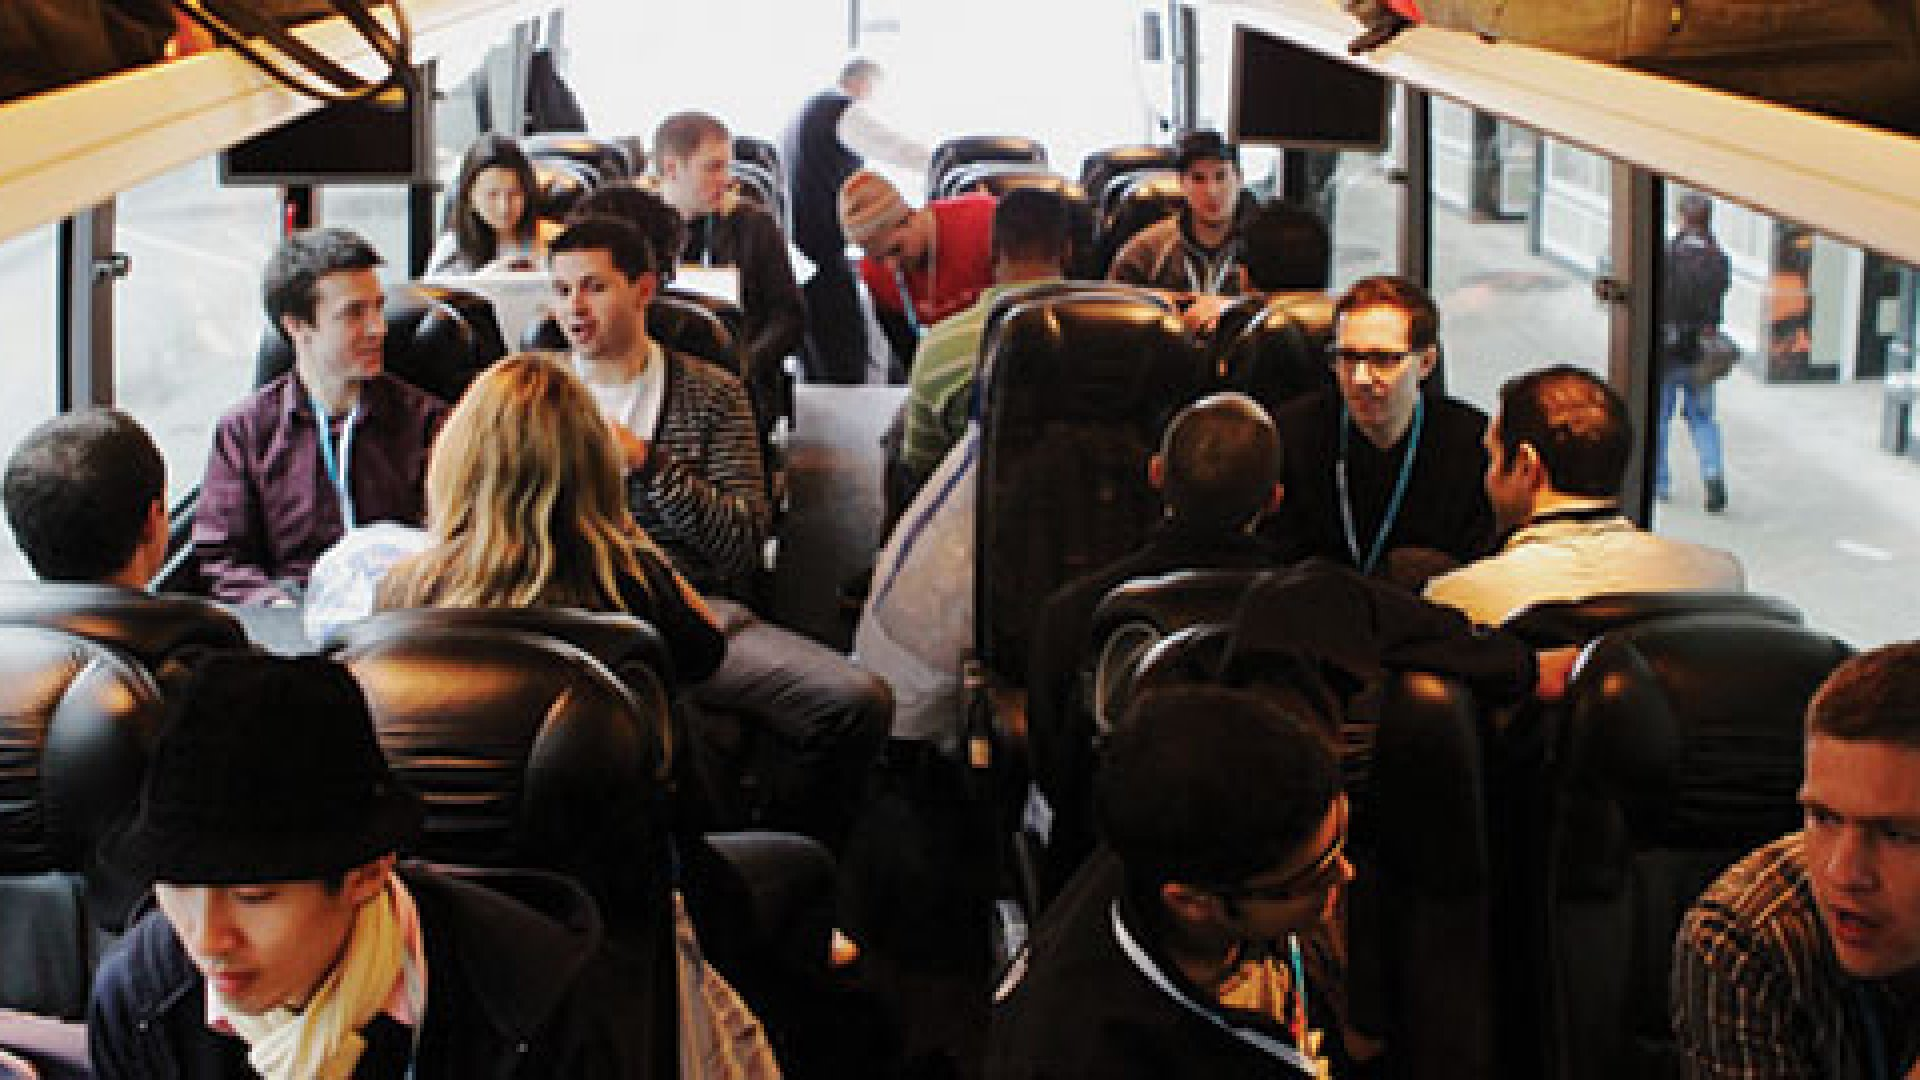 """<strong>Buspreneurs</strong>: Young programmers head out on Day One of the  <a href=""""http://www.wired.com/underwire/2011/03/startup-bus-sxsw/"""" target=""""_blank"""">StartupBus's</a> two-day trip to SXSW."""